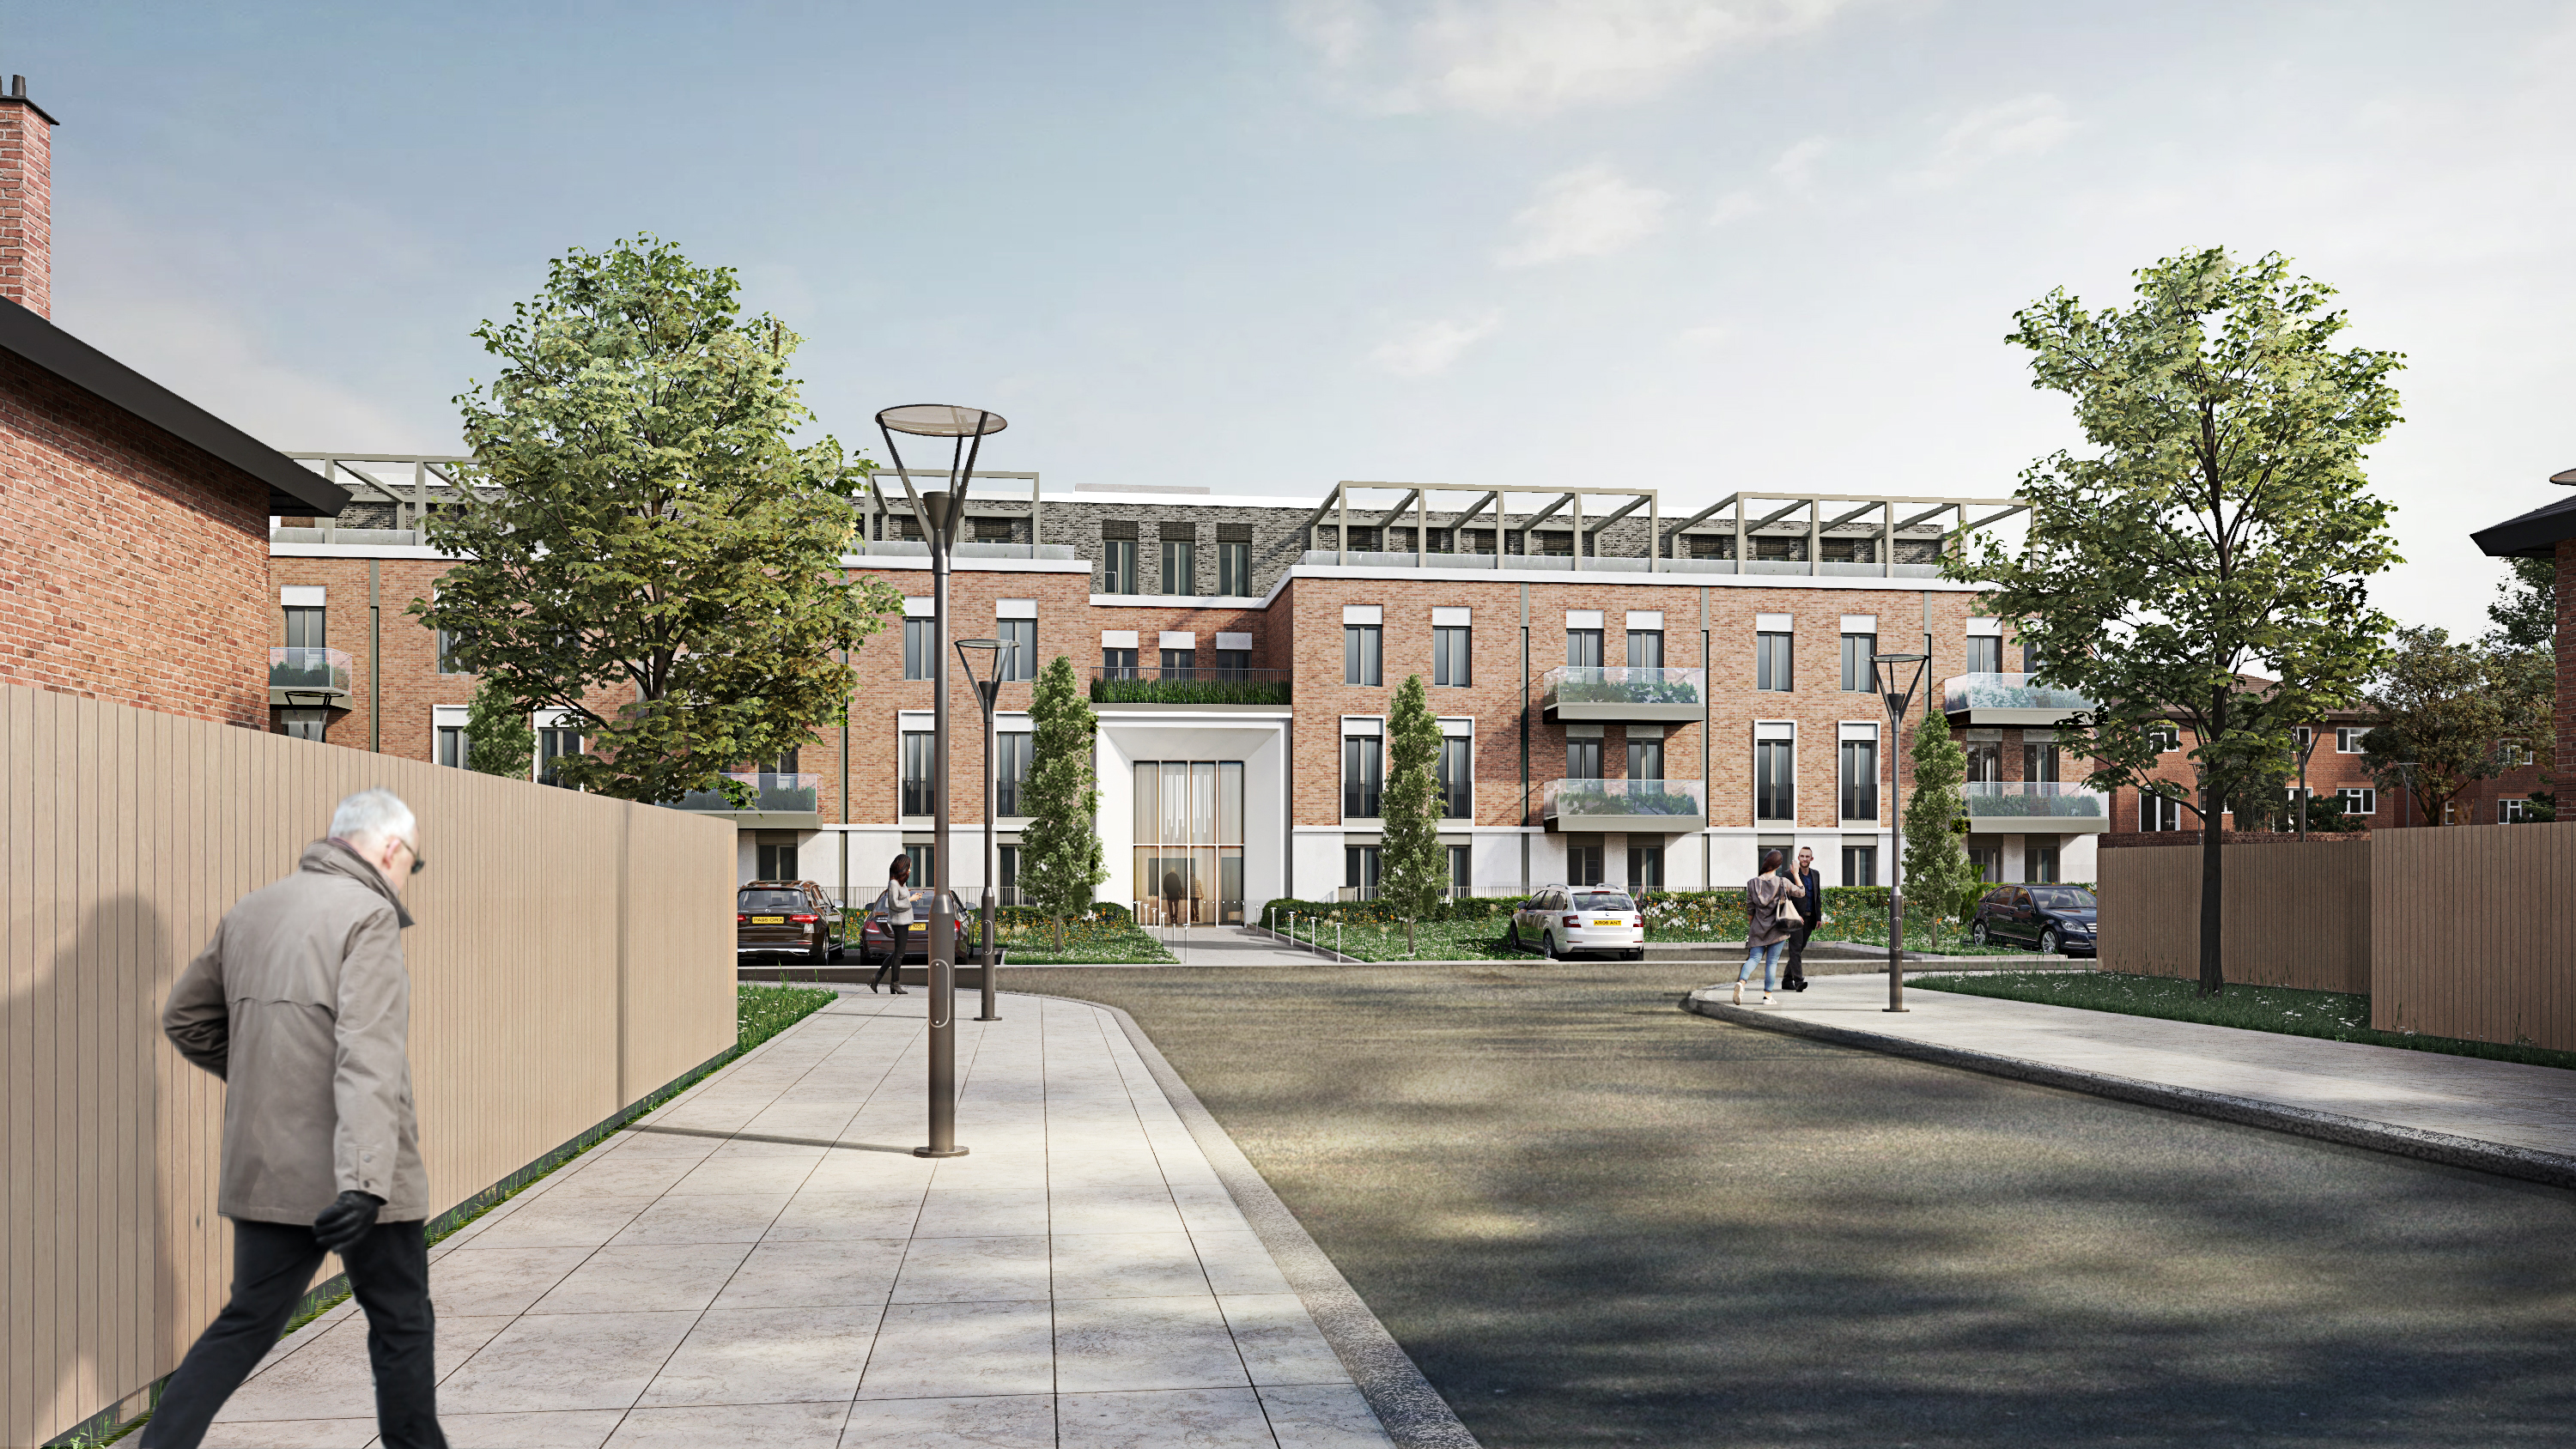 Plans to be submitted for Council Housing Development